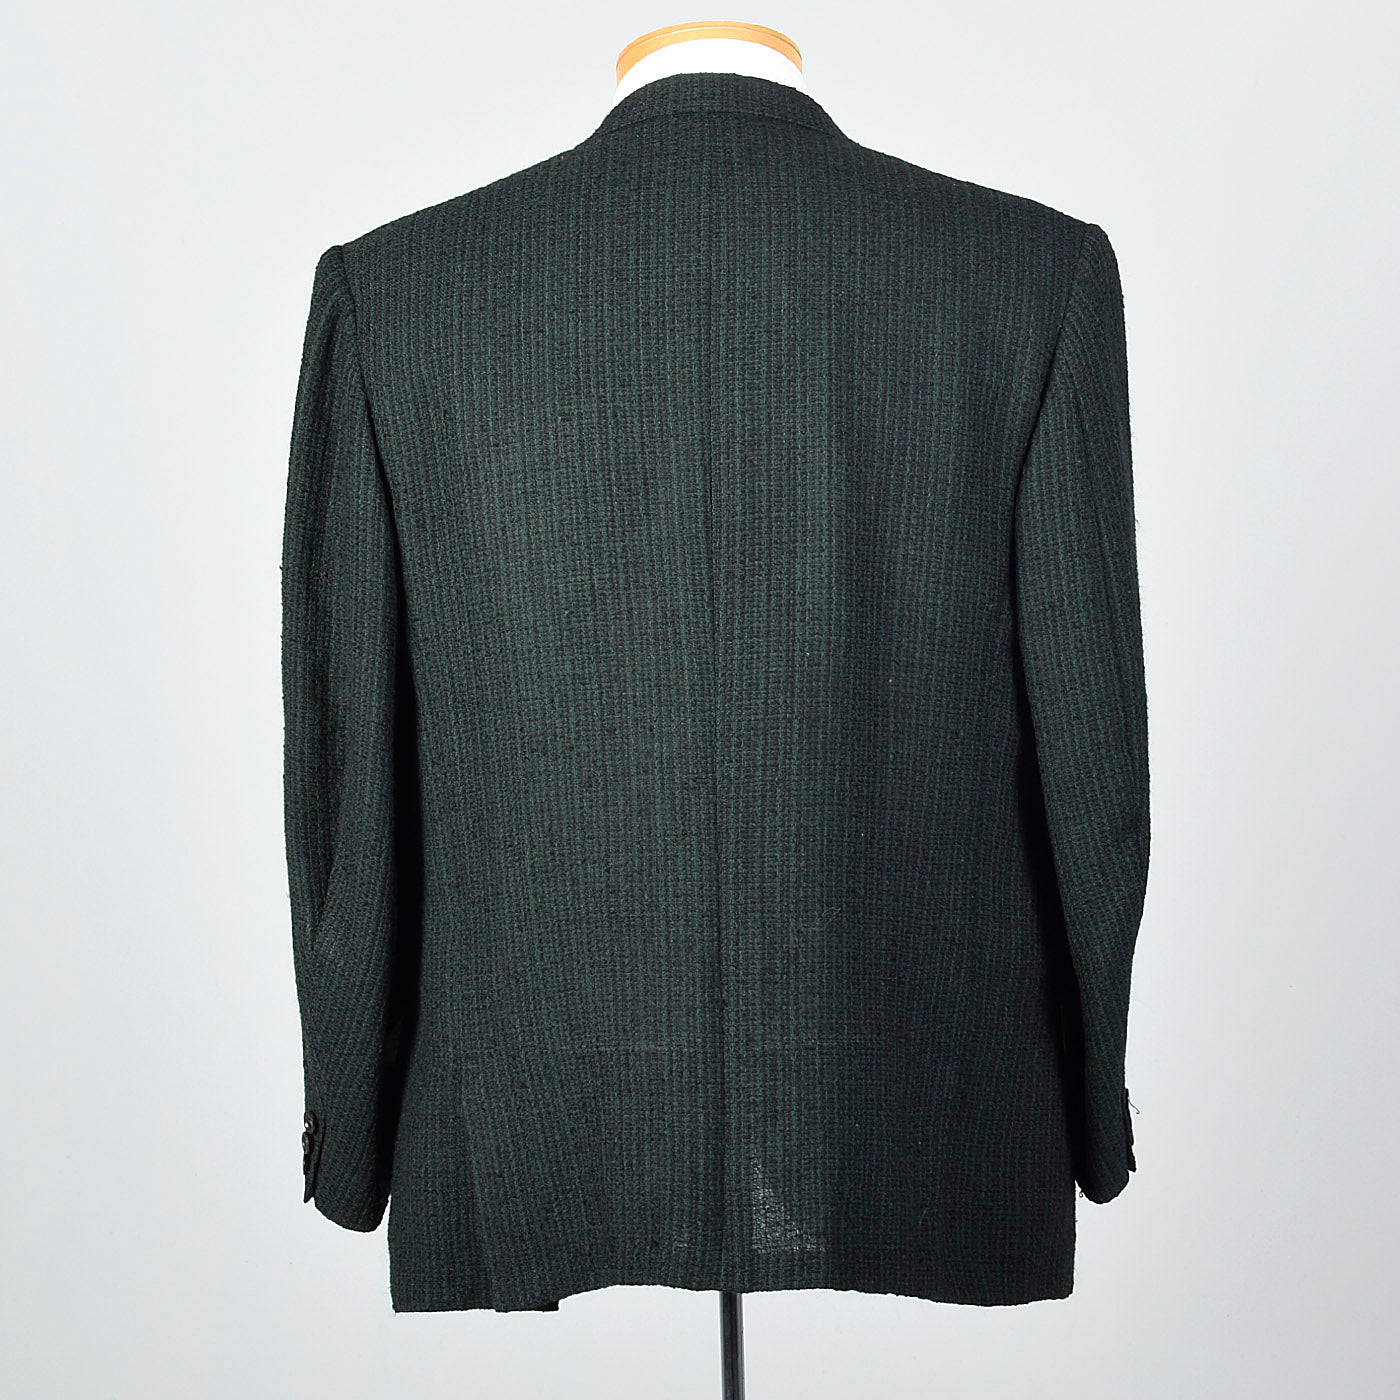 1960s Mens Black with Green Stripe Jacket in a Textured Weave